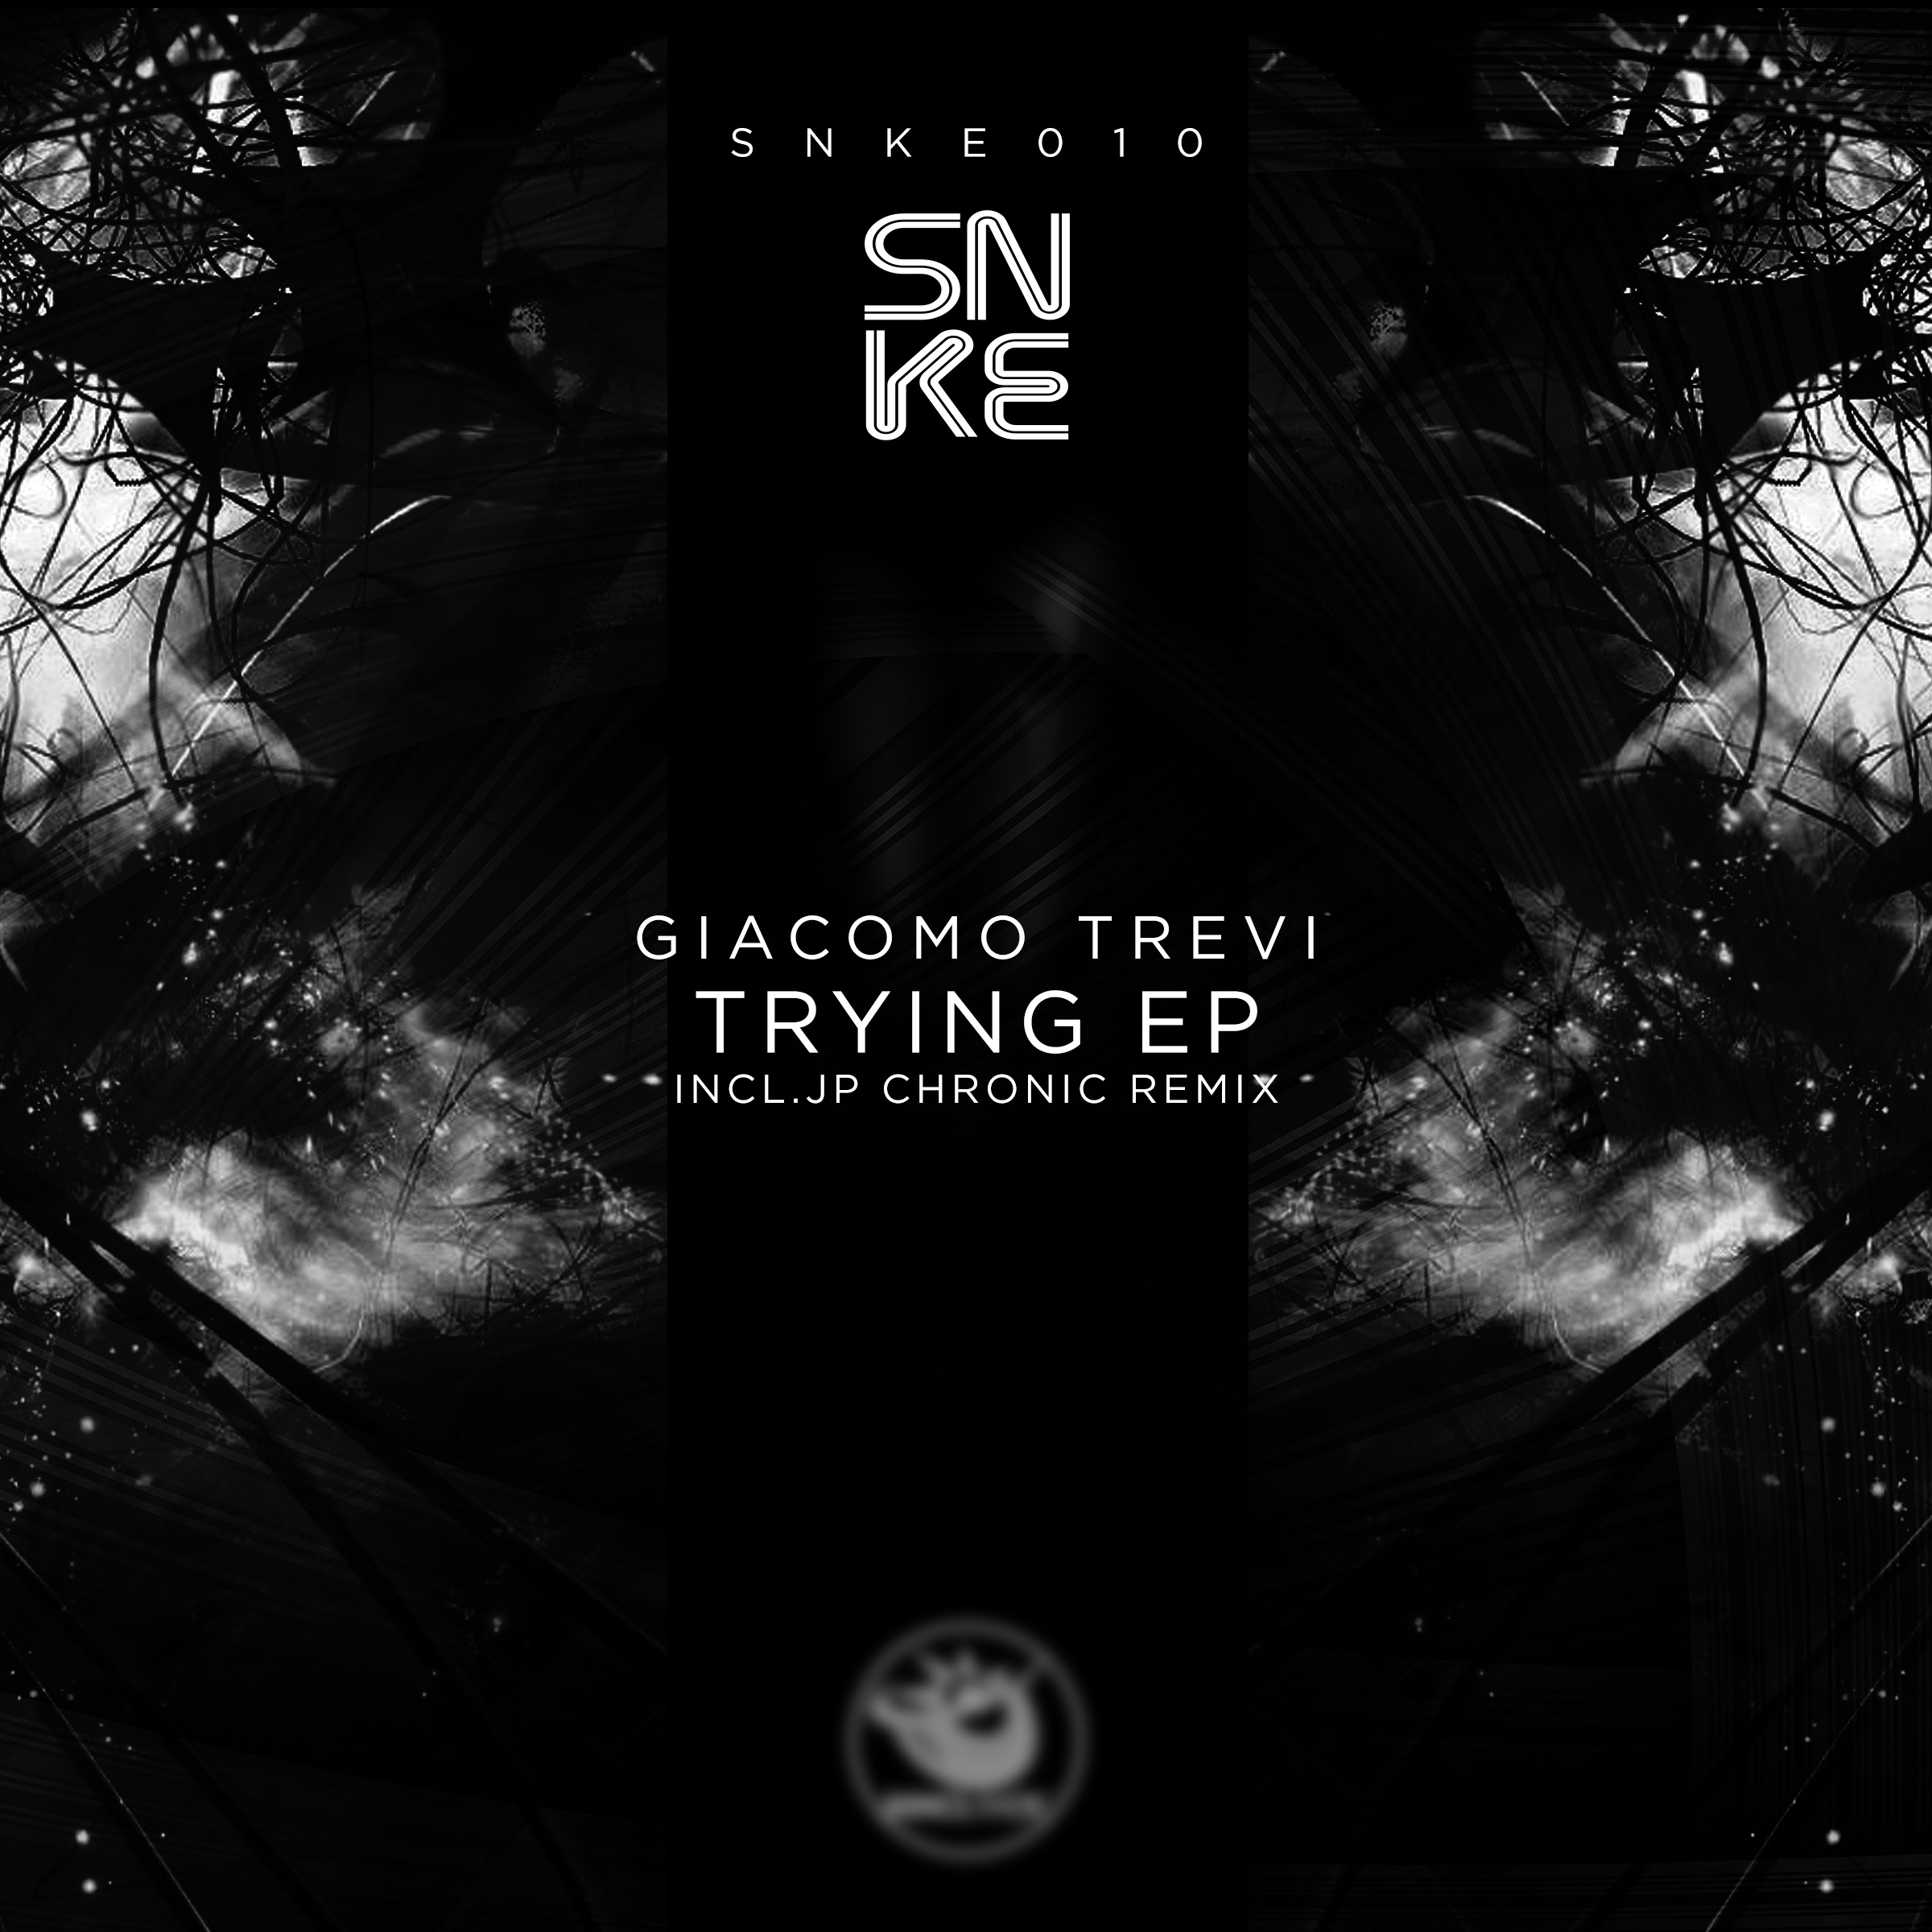 Giacomo Trevi - Trying Ep - SNKE010 Cover